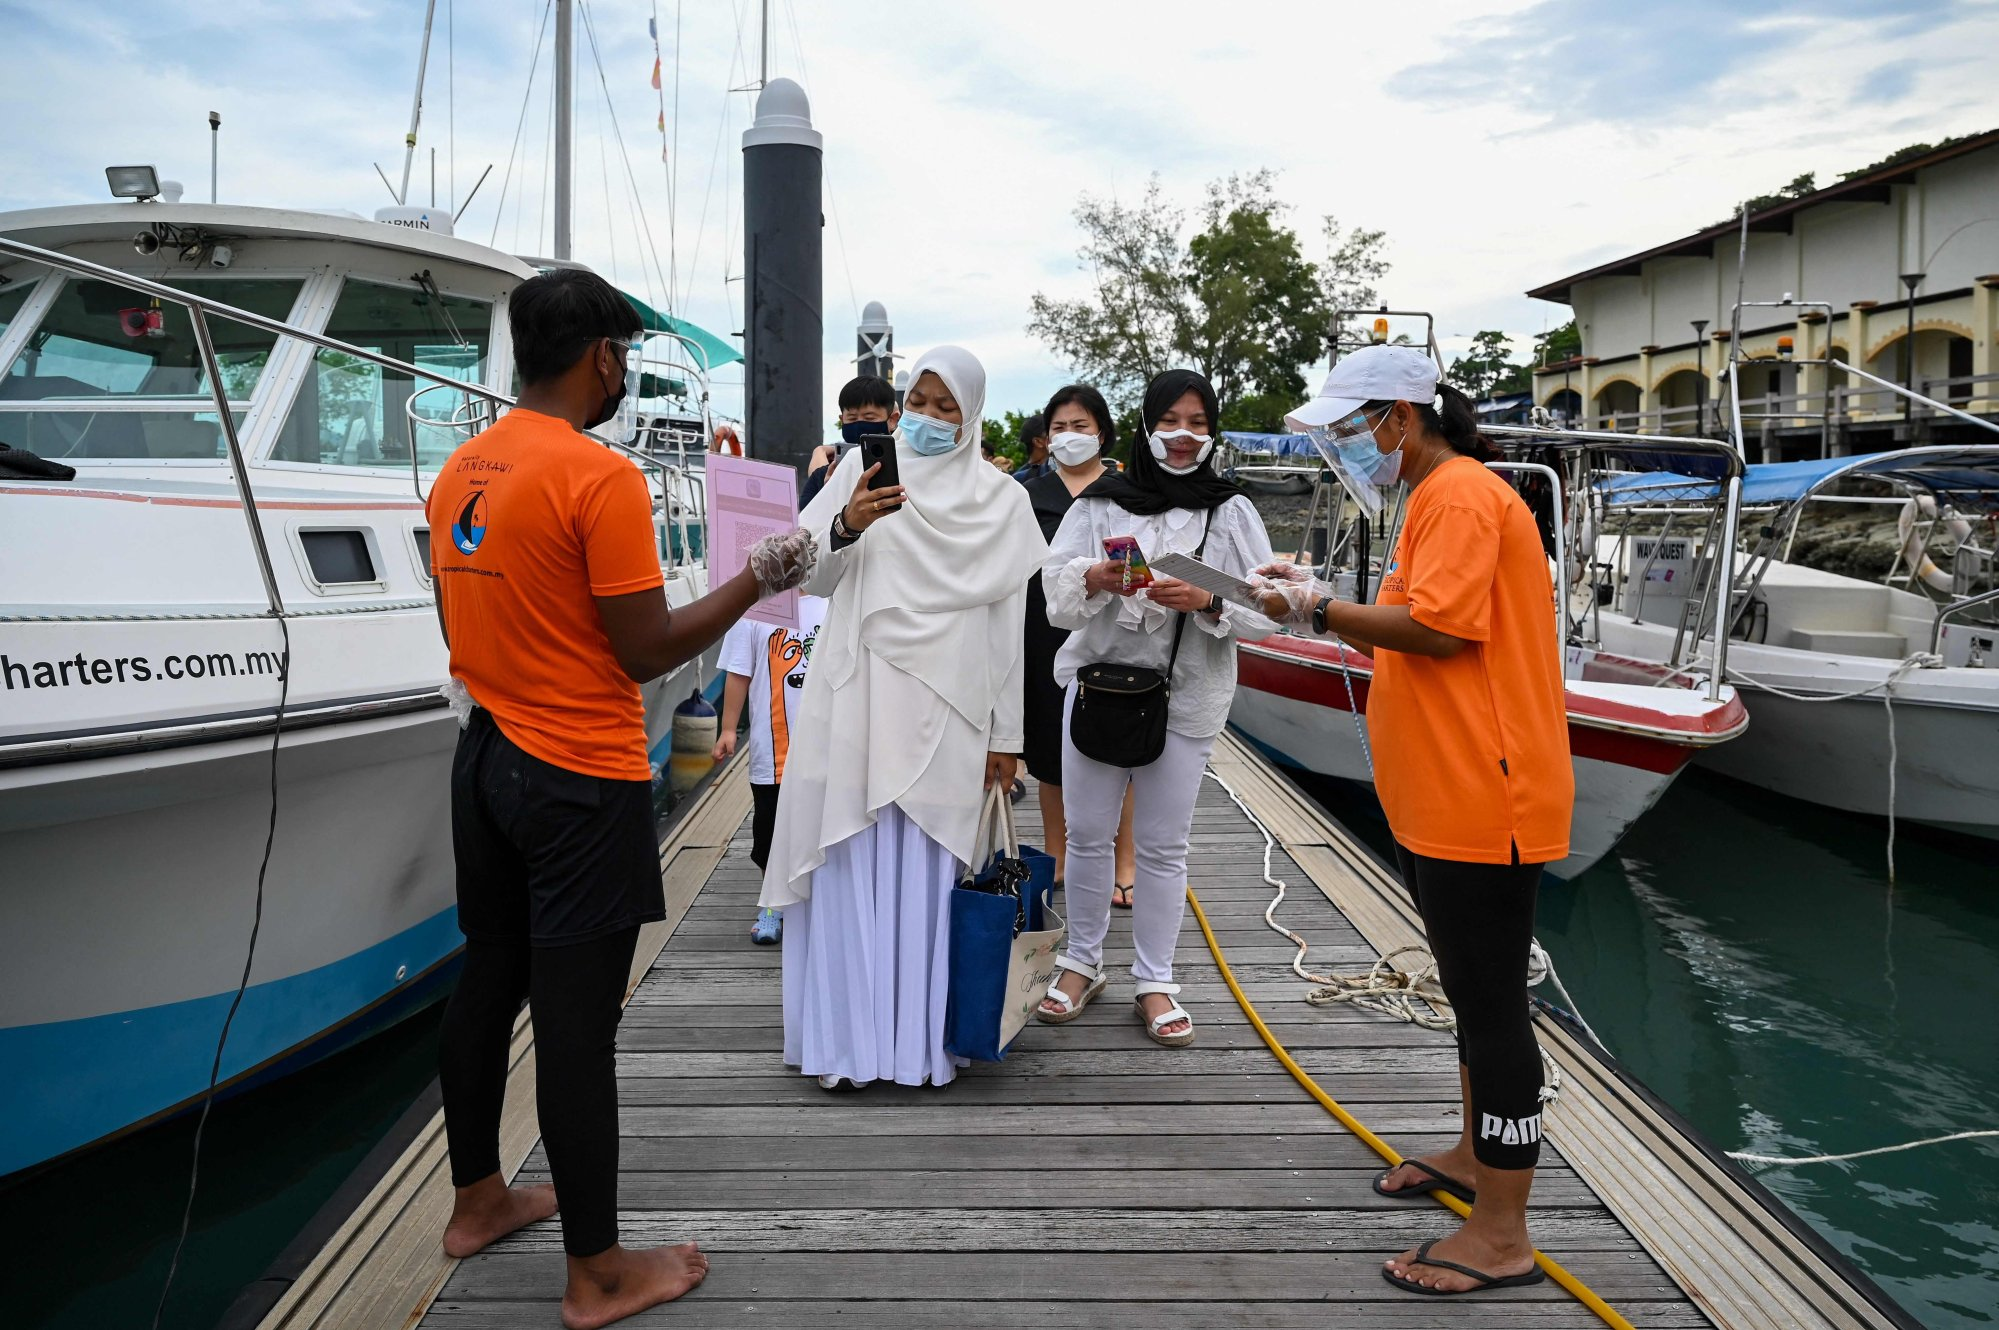 Passengers have the MySejahtera app, used to monitor the Covid-19 coronavirus status, scanned before boarding a yacht in Langkawi. Photo: AFP